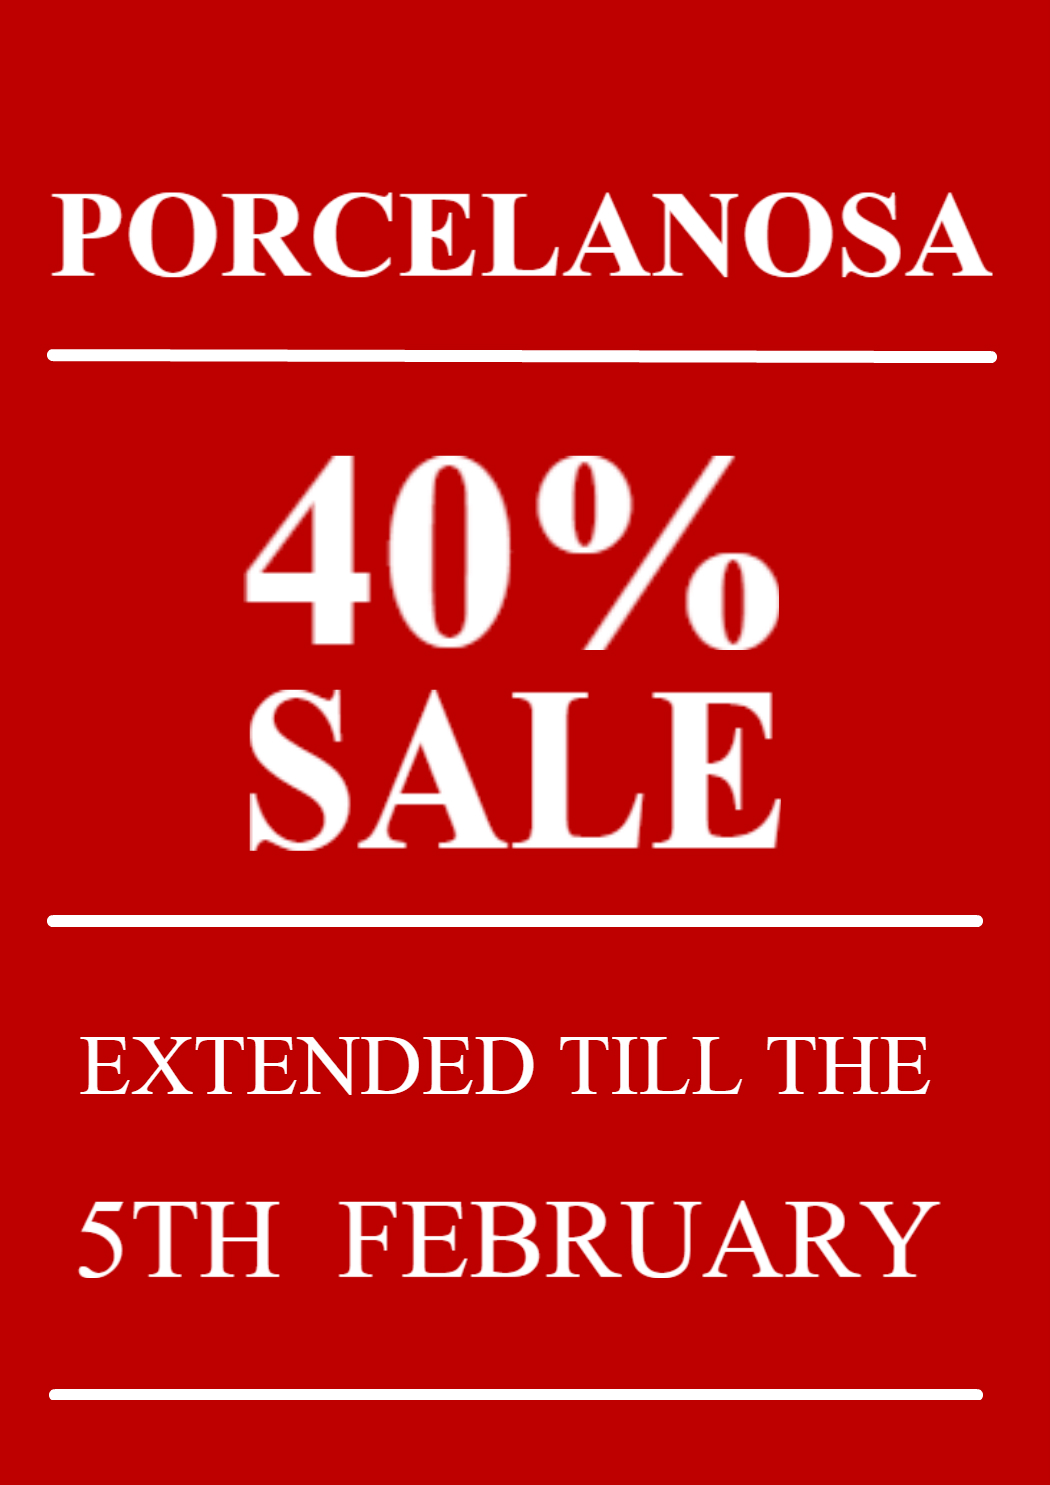 PORCELANOSA EXTENDED